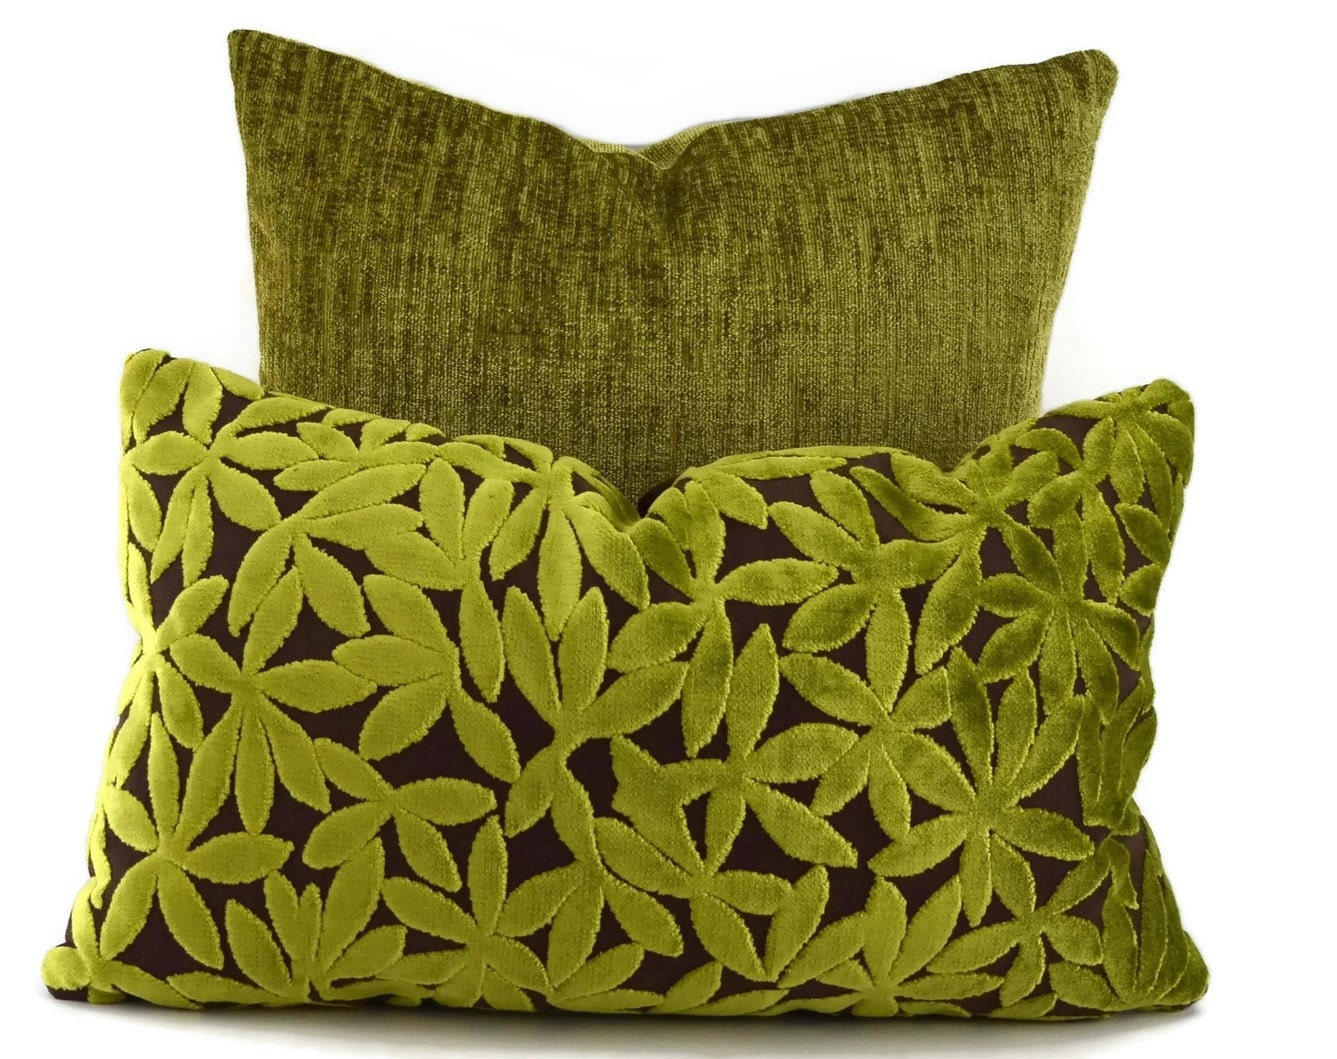 SALE Lime & Chocolate Cut Velvet Lumbar Pillow Cover Green